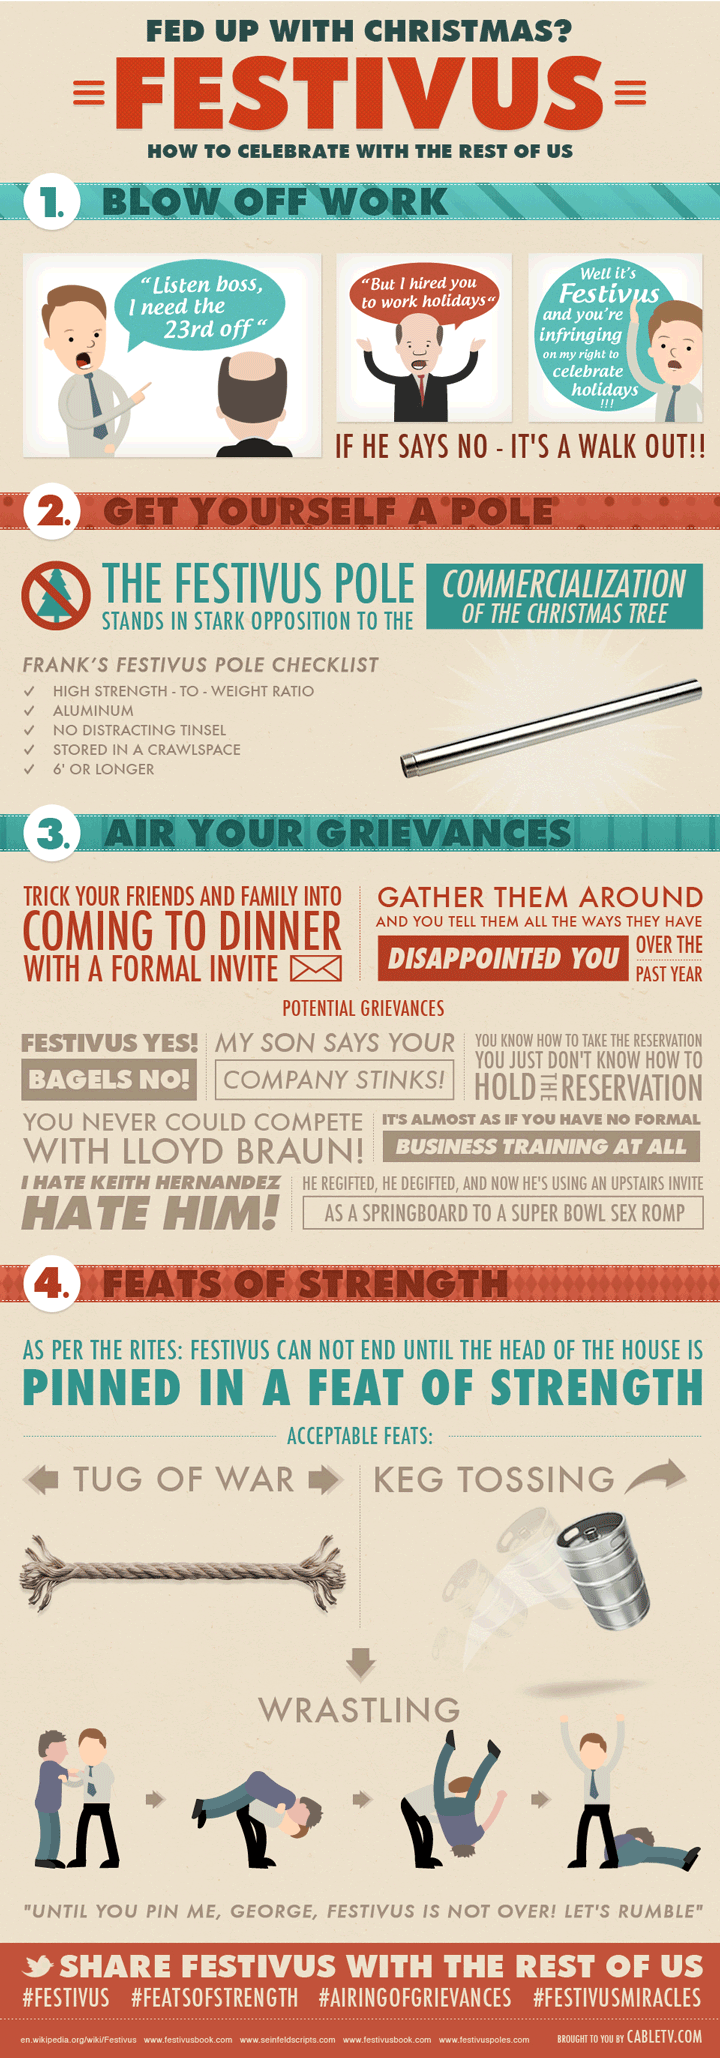 Ready to have a Happy Festivus? If you haven't prepared, that's perfect! Just follow these 4 easy steps to a stress-free holiday.